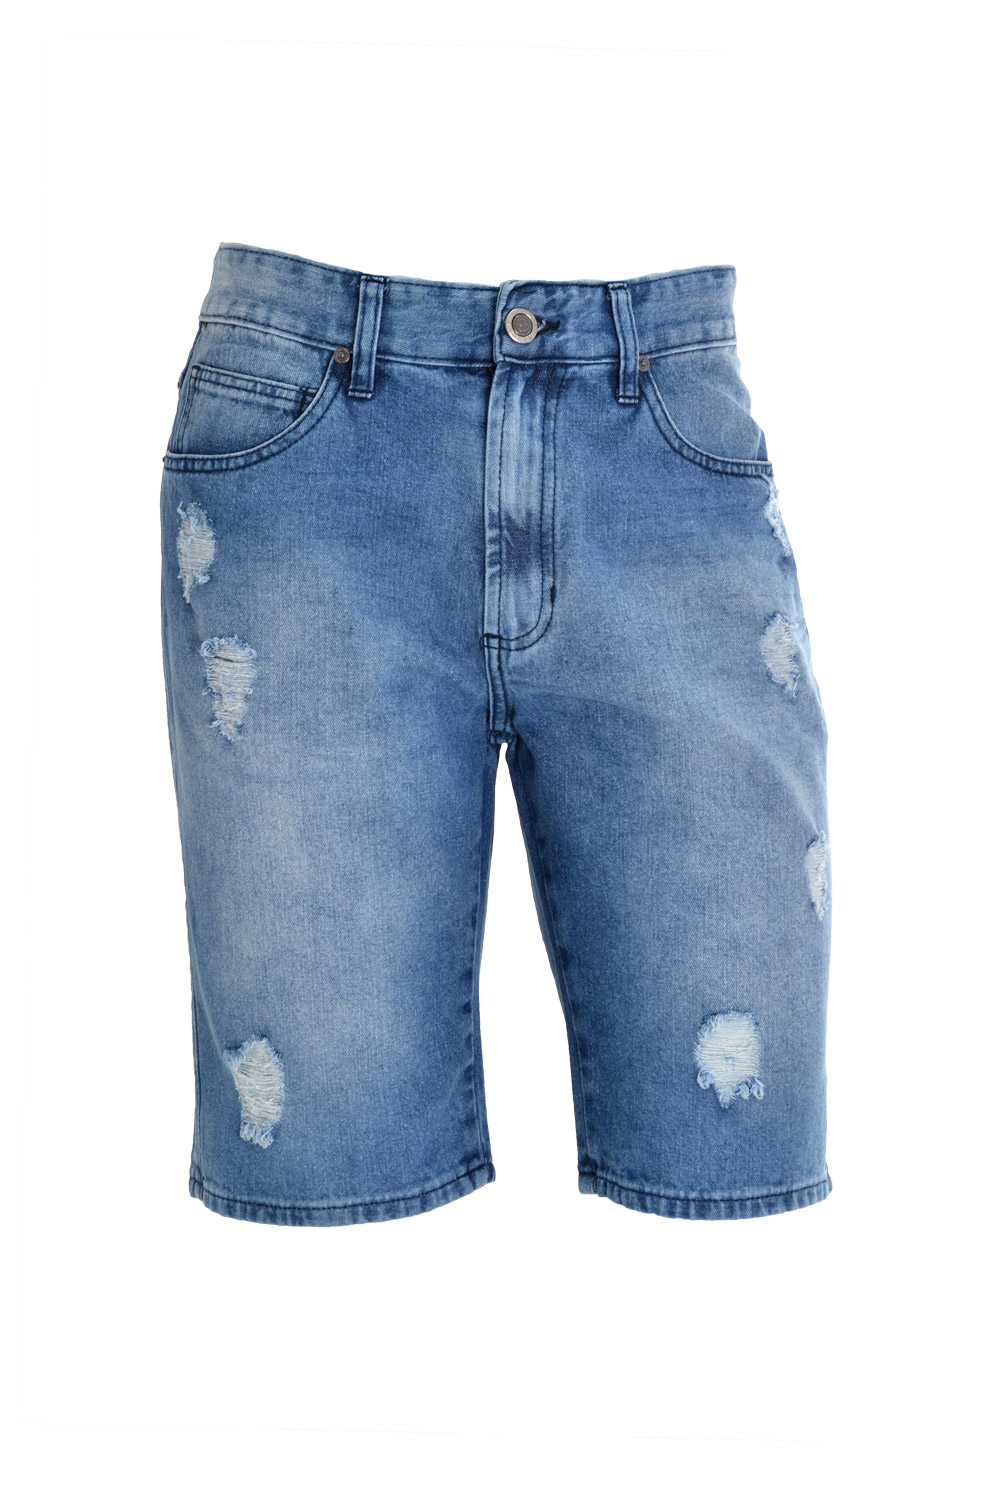 BERMUDA BLUES SLIM ALGODAO 5 POCKETS STONED DELAVE